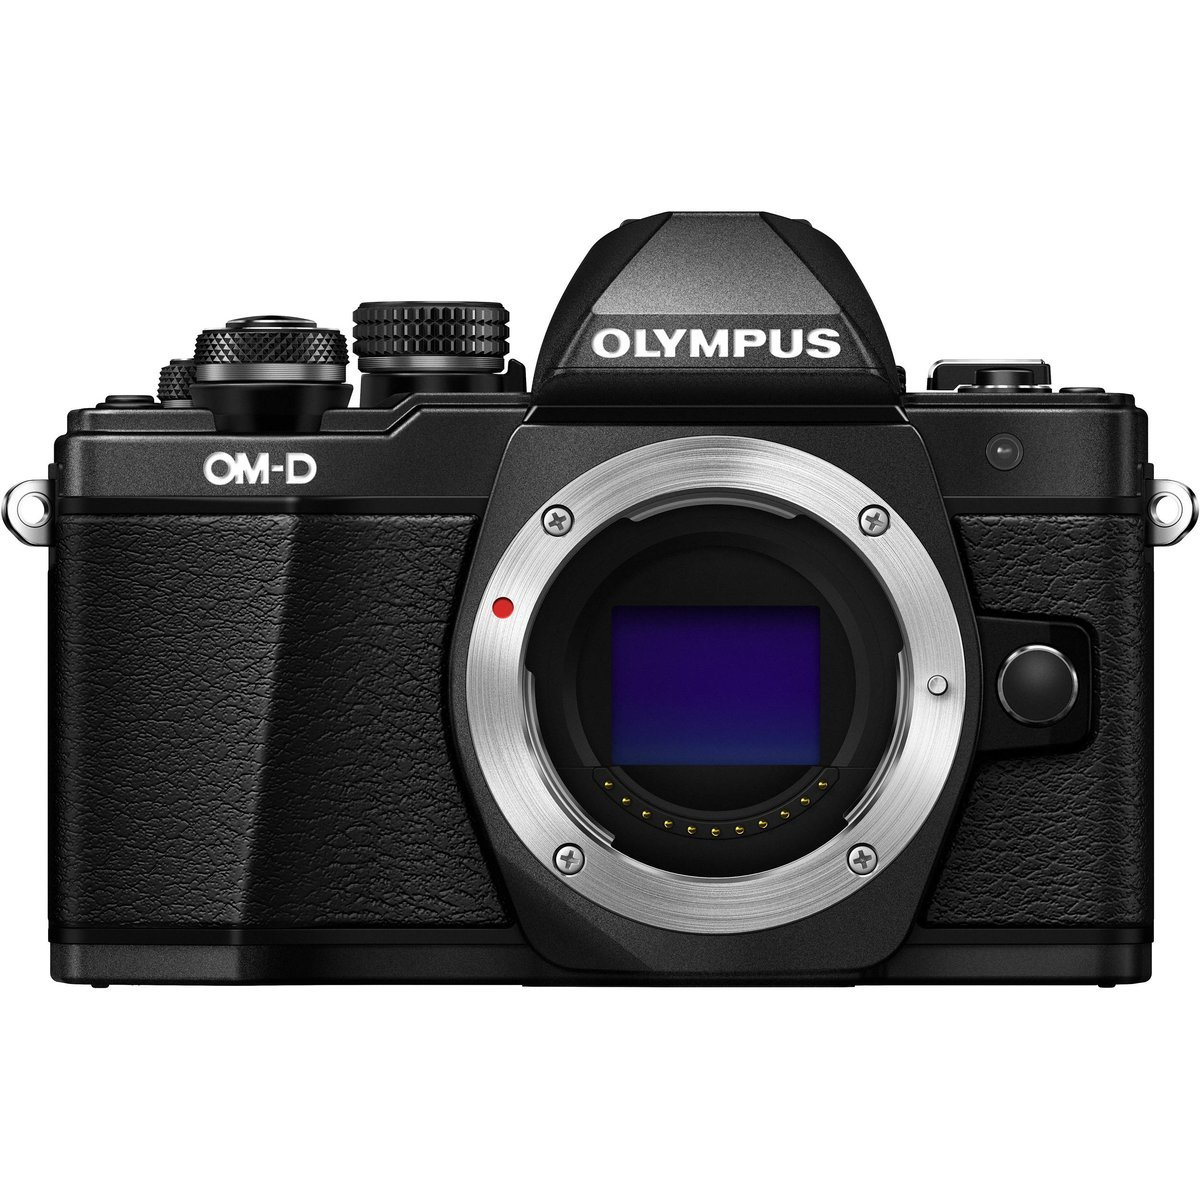 Image of Olympus E-M10 Mark II OM-D Body Only Digital Camera - Black